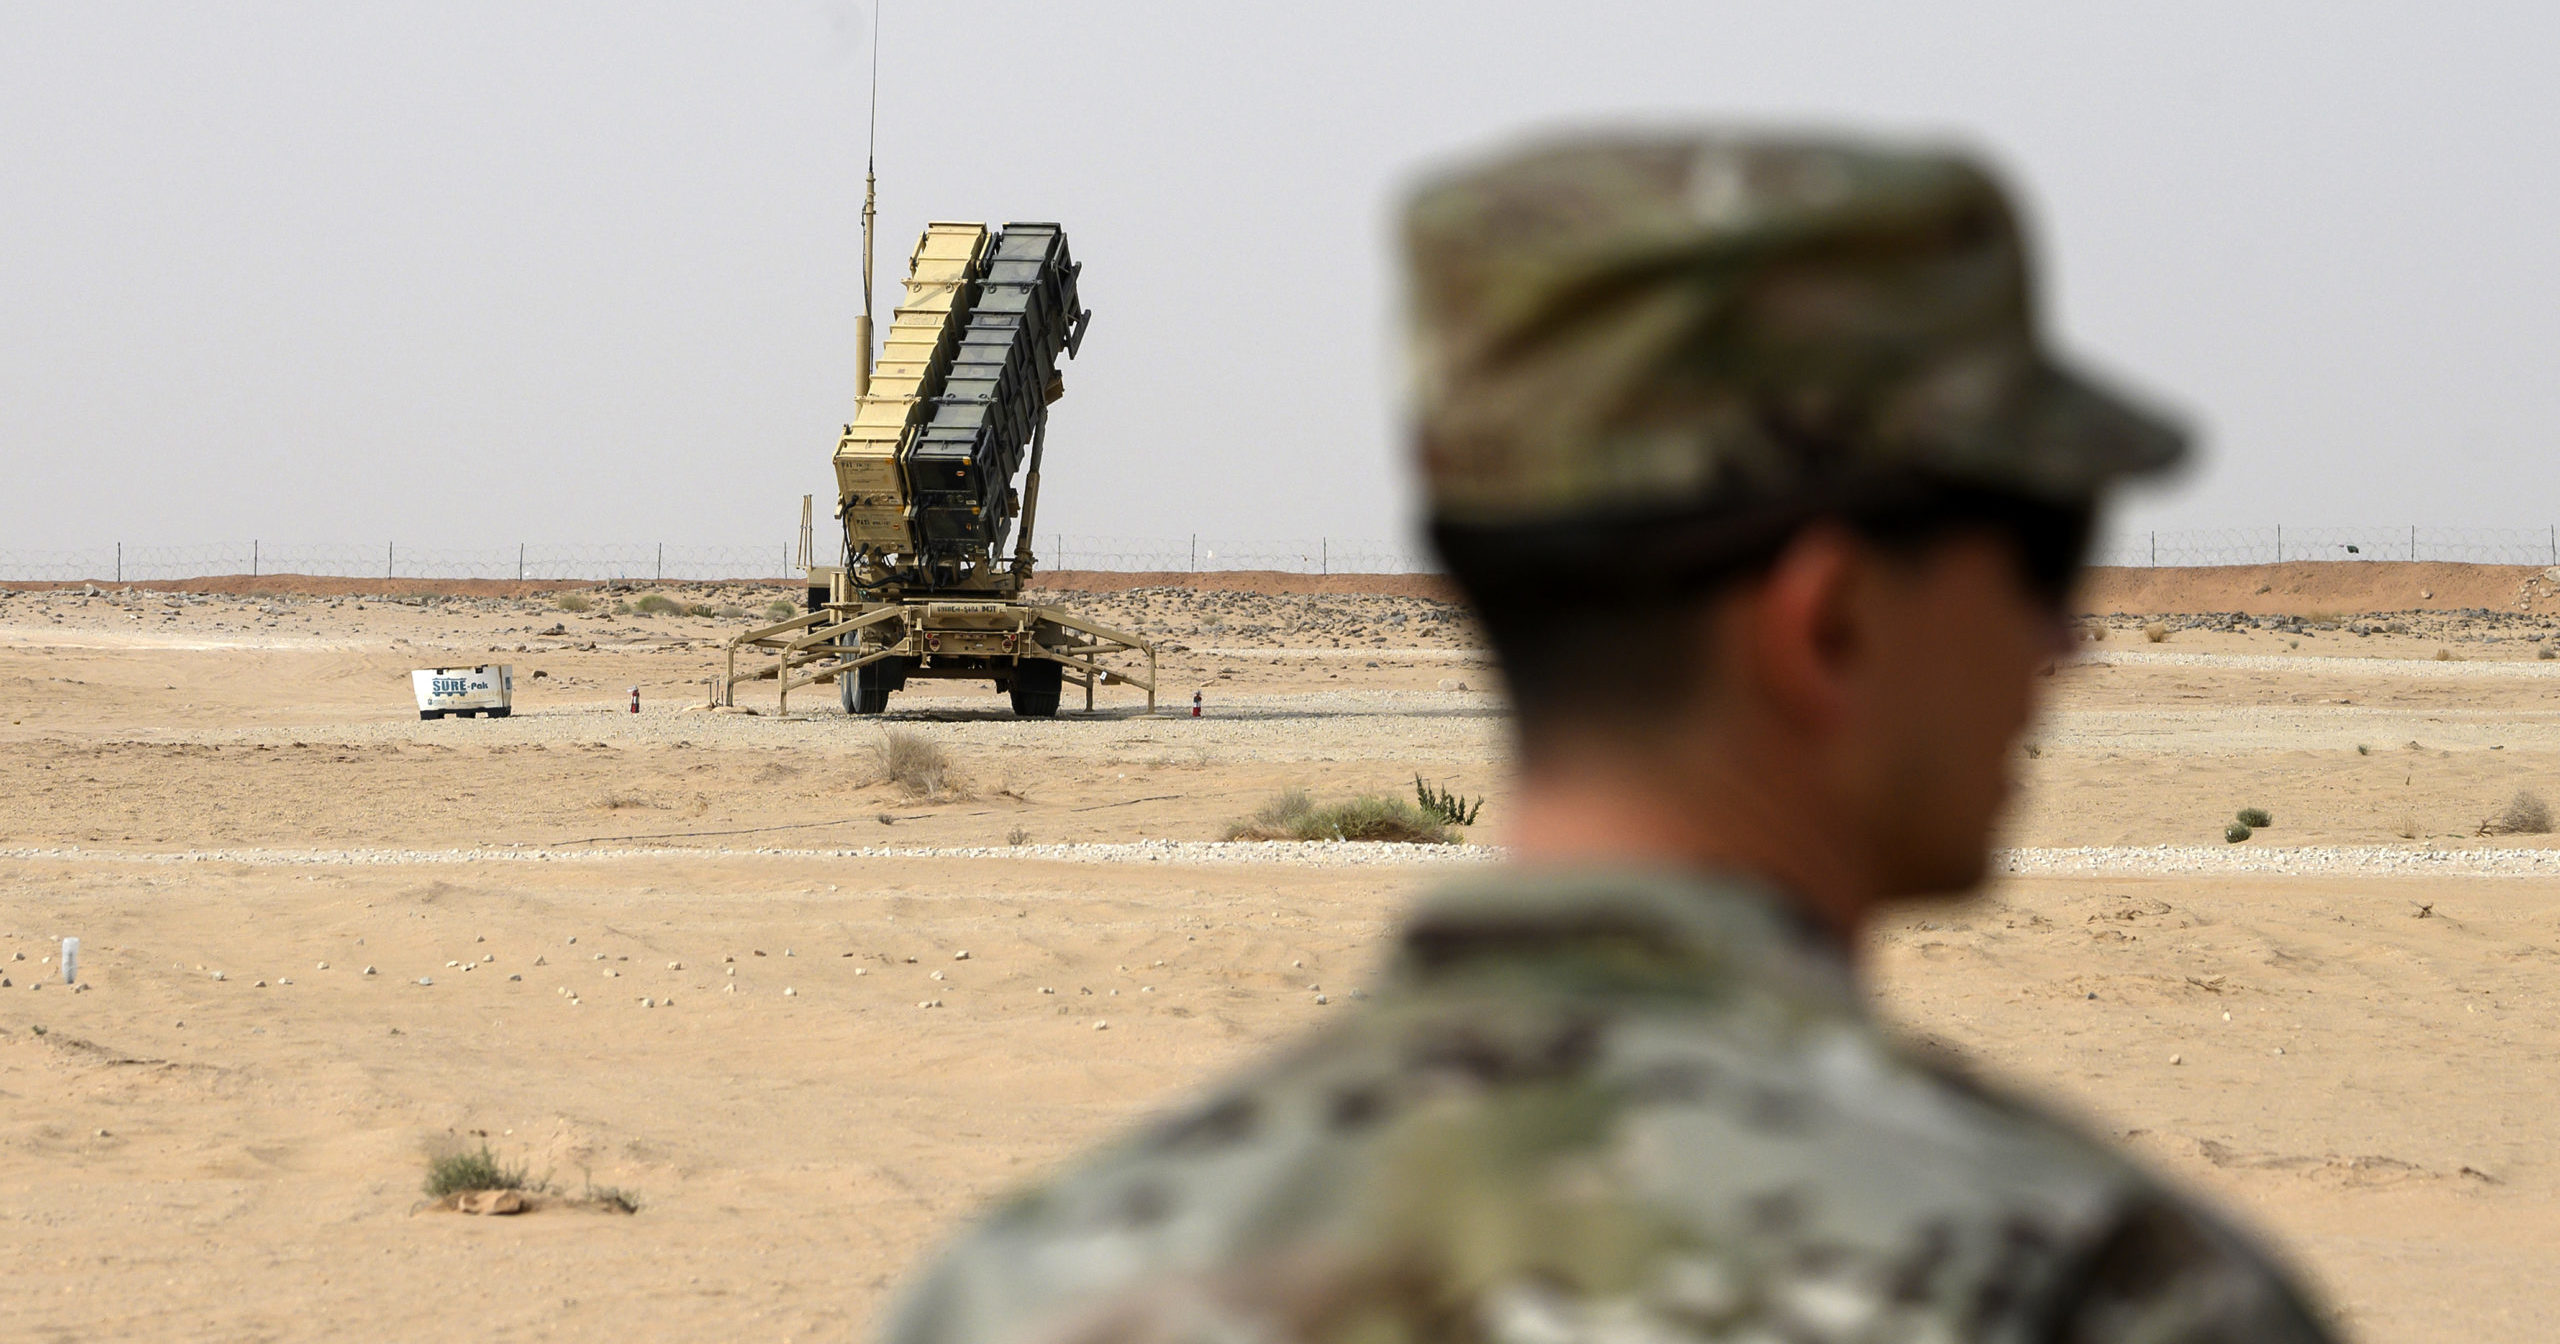 A member of the U.S. Air Force stands near a missile battery at the Prince Sultan Air Base in al-Kharj, Saudi Arabia, on Feb. 20, 2020.